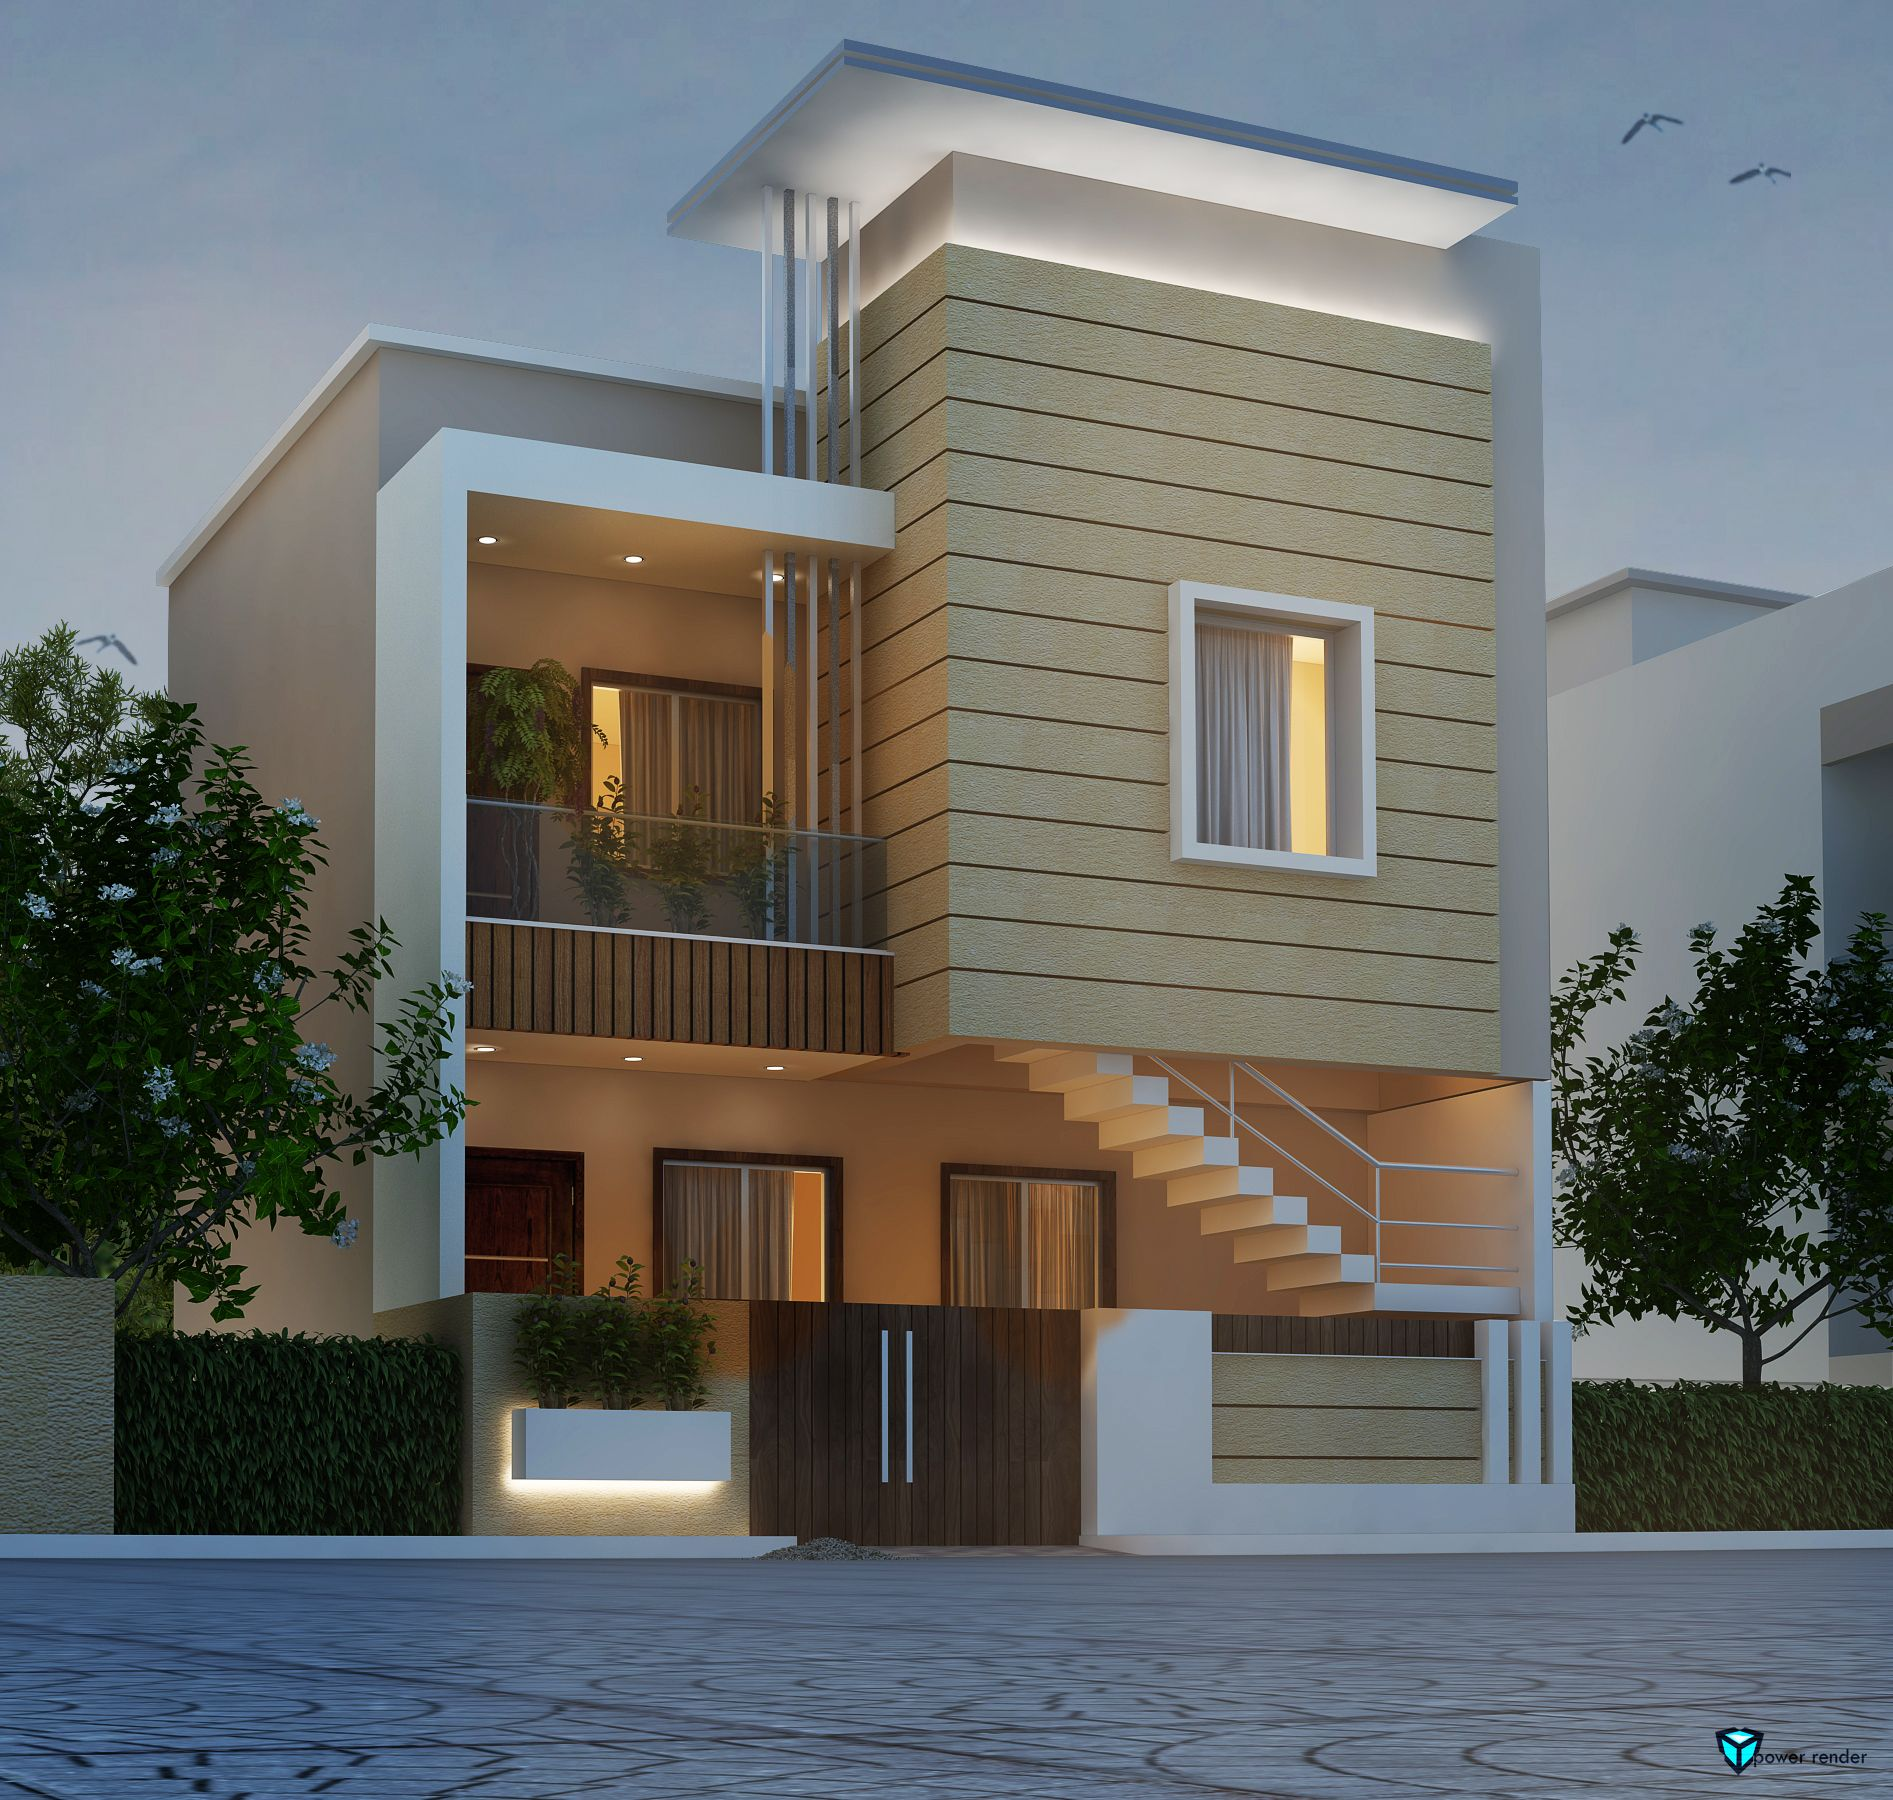 Lot block front elevation designs house villa design modern also disenos de casa elevations in pinterest rh